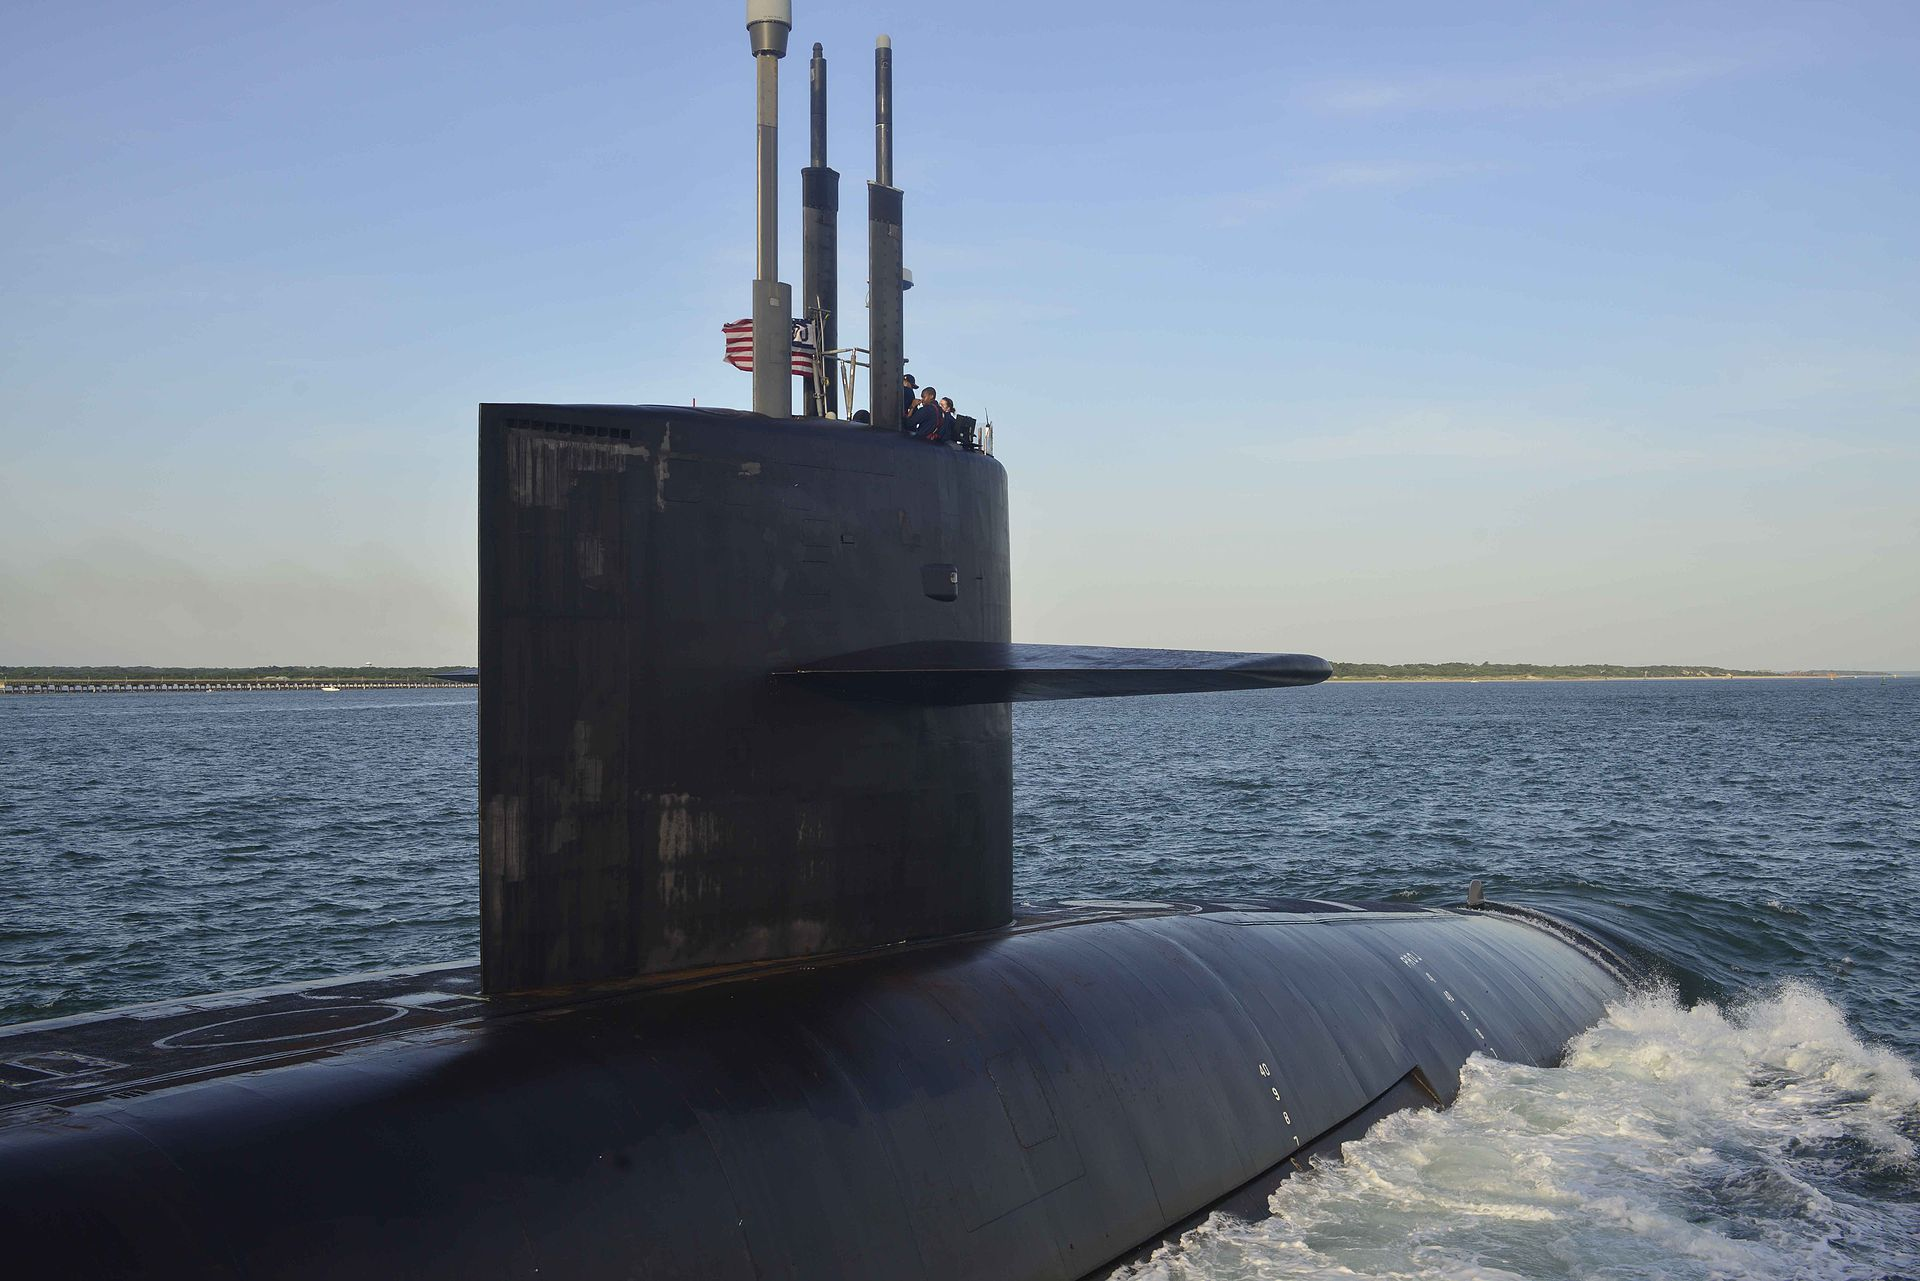 'Super-Fuzed' Warheads on U.S. Navy Subs Risk Sparking an Accidental